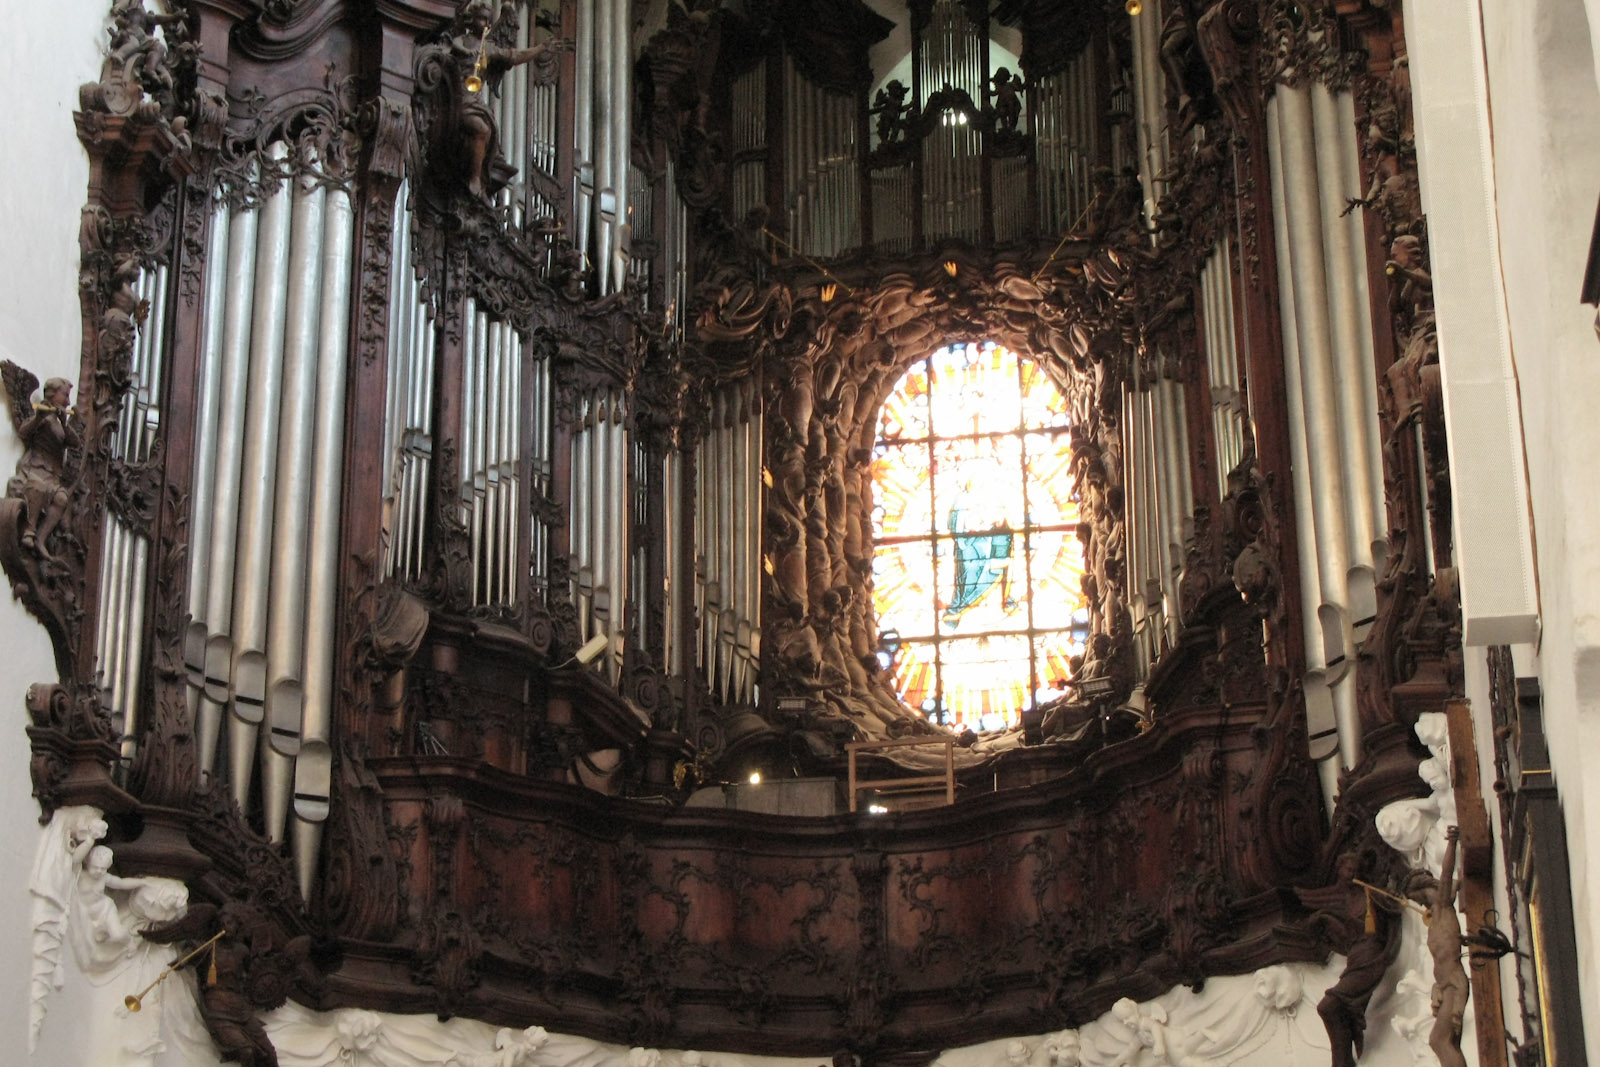 The grand organ of the Cathedral of Gdańsk Oliwa